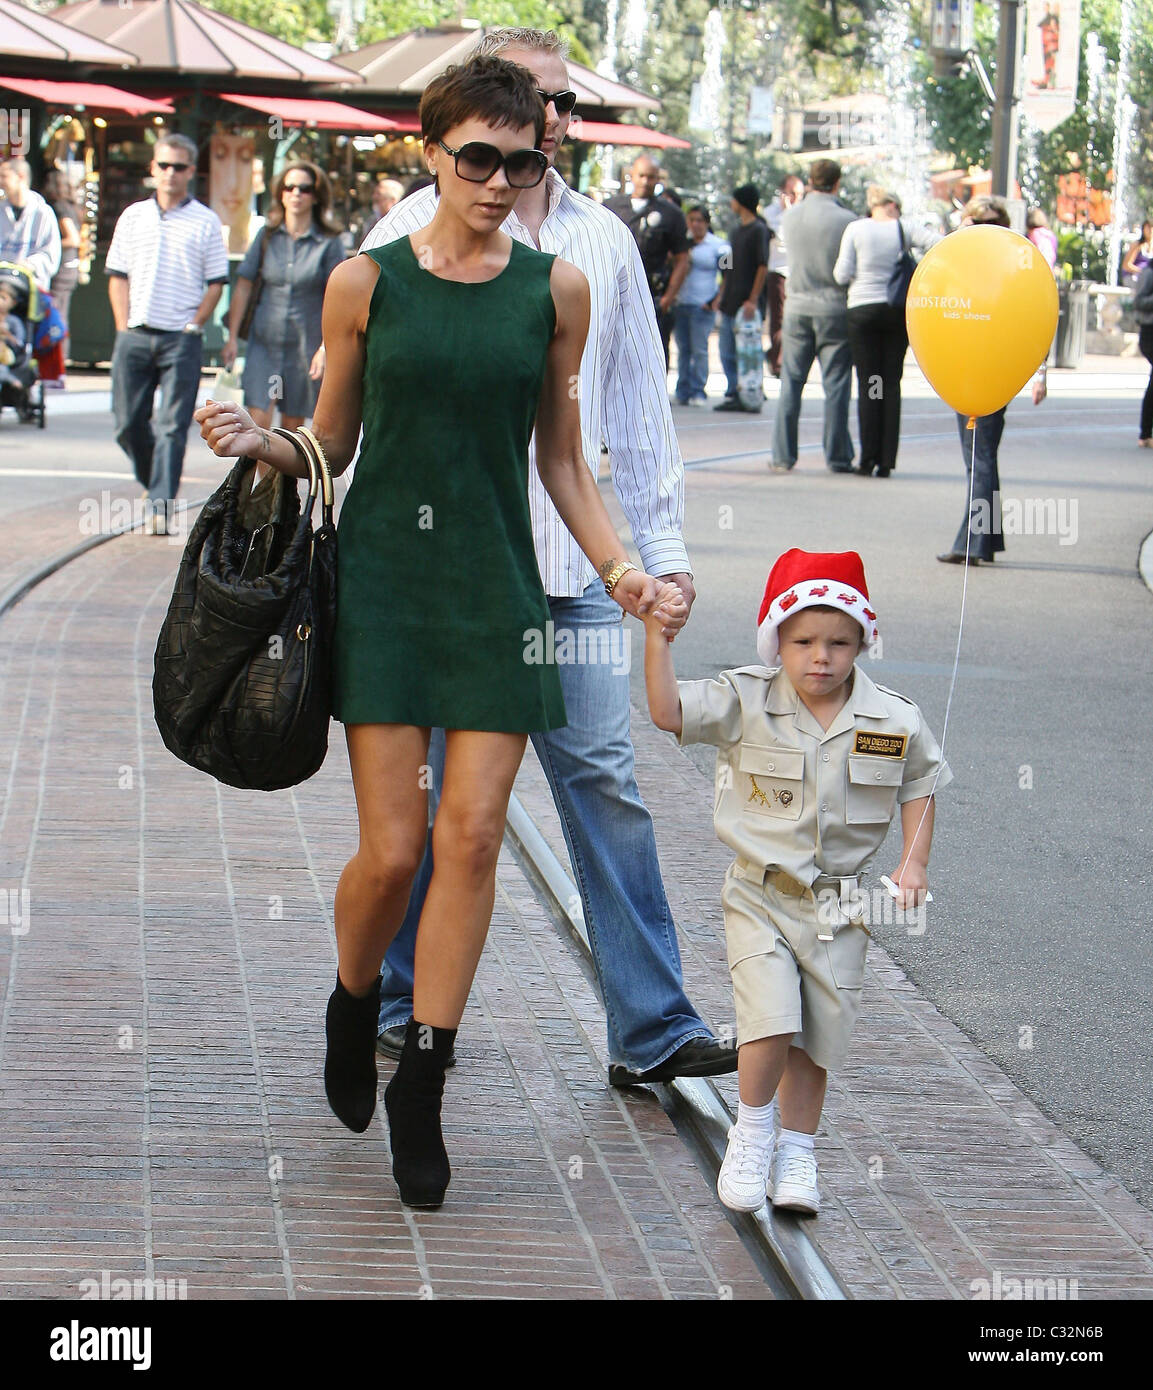 Victoria Beckham Wearing A Little Green Dress And Son Cruz Beckham